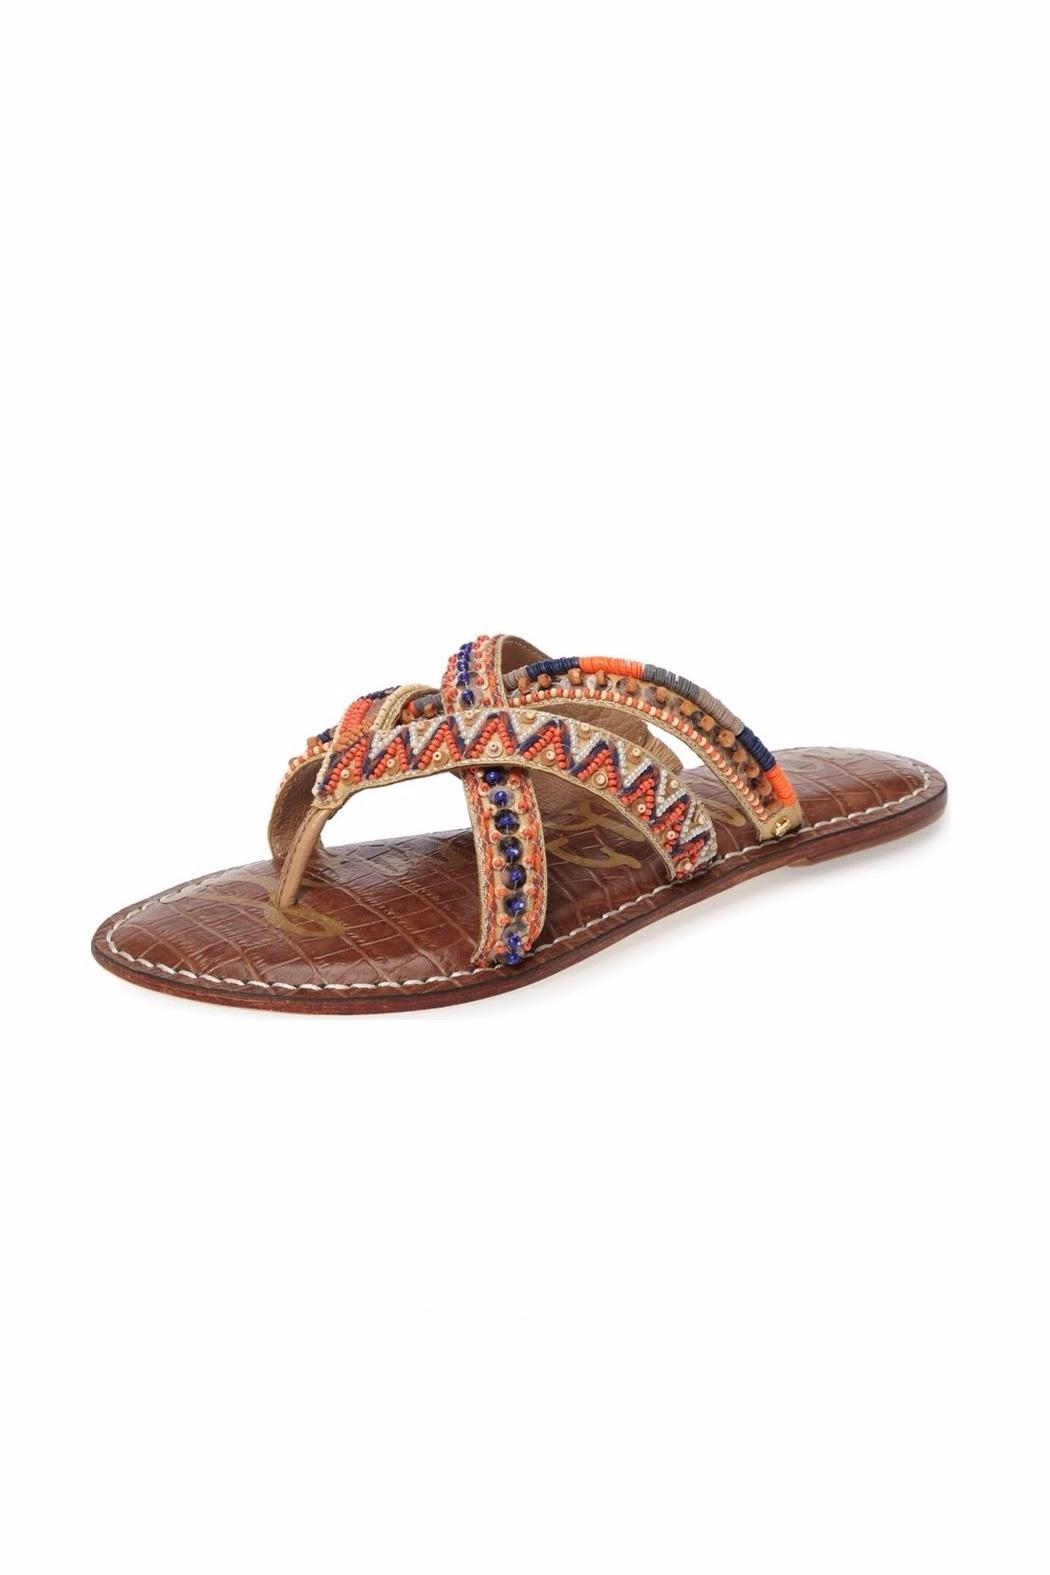 8b6517ada999 Sam Edelman Karly Beaded Sandal from Hudson Valley by Bfree — Shoptiques